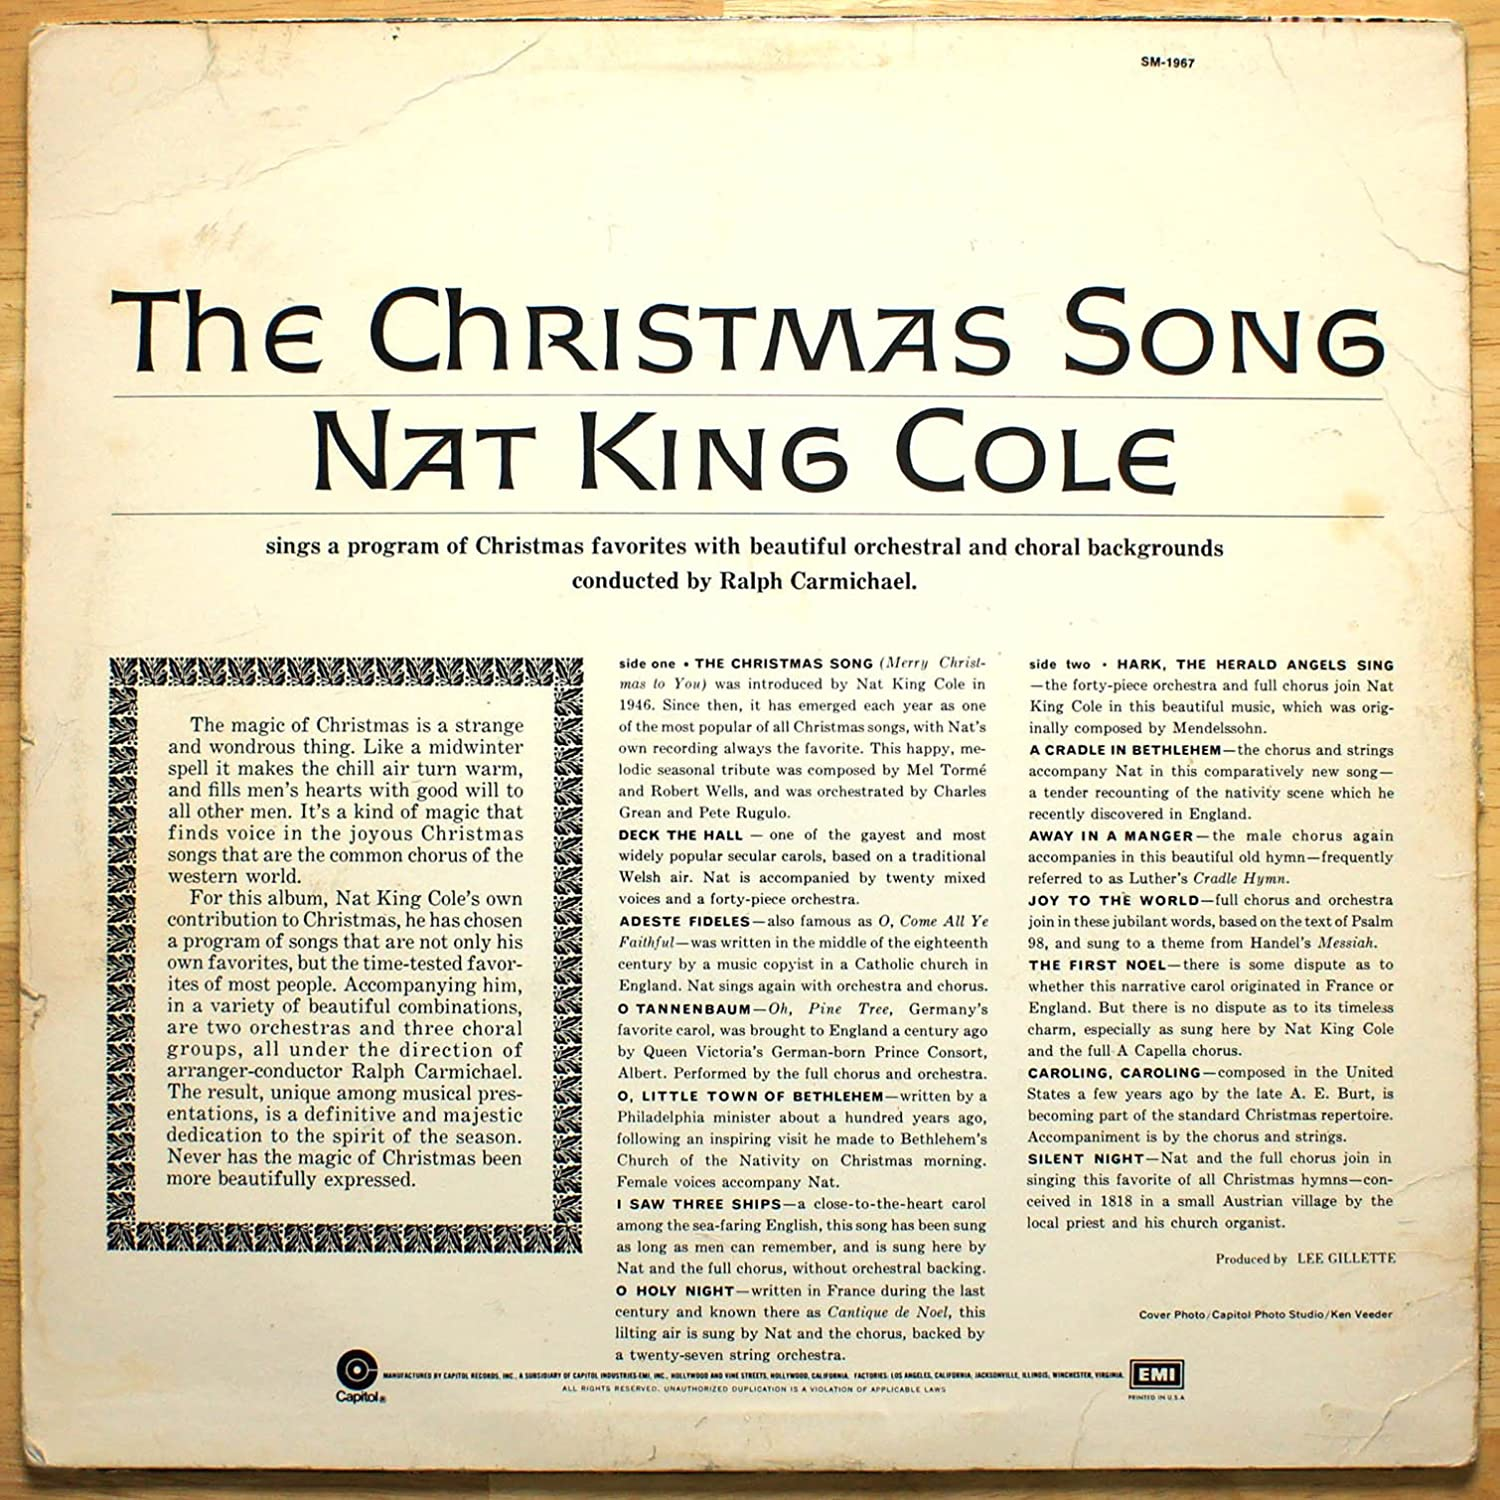 Nat King Cole - Nat King Cole\'s The Christmas Song - Amazon.com Music